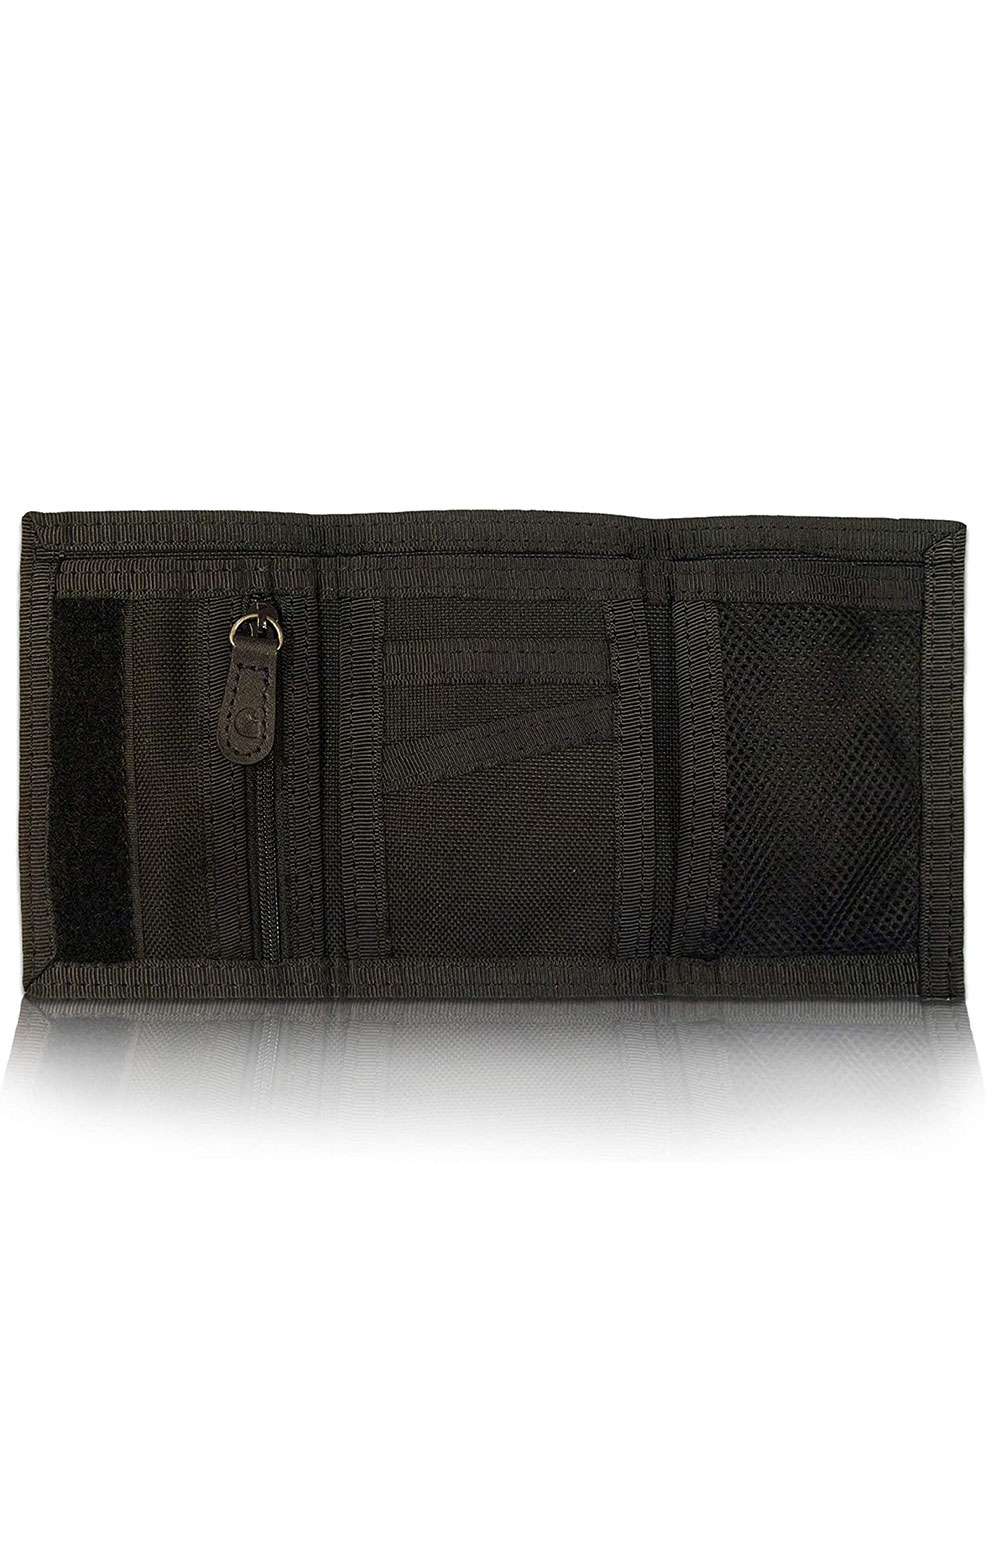 (B000021100299) Extremes Trifold Wallet - Black 2